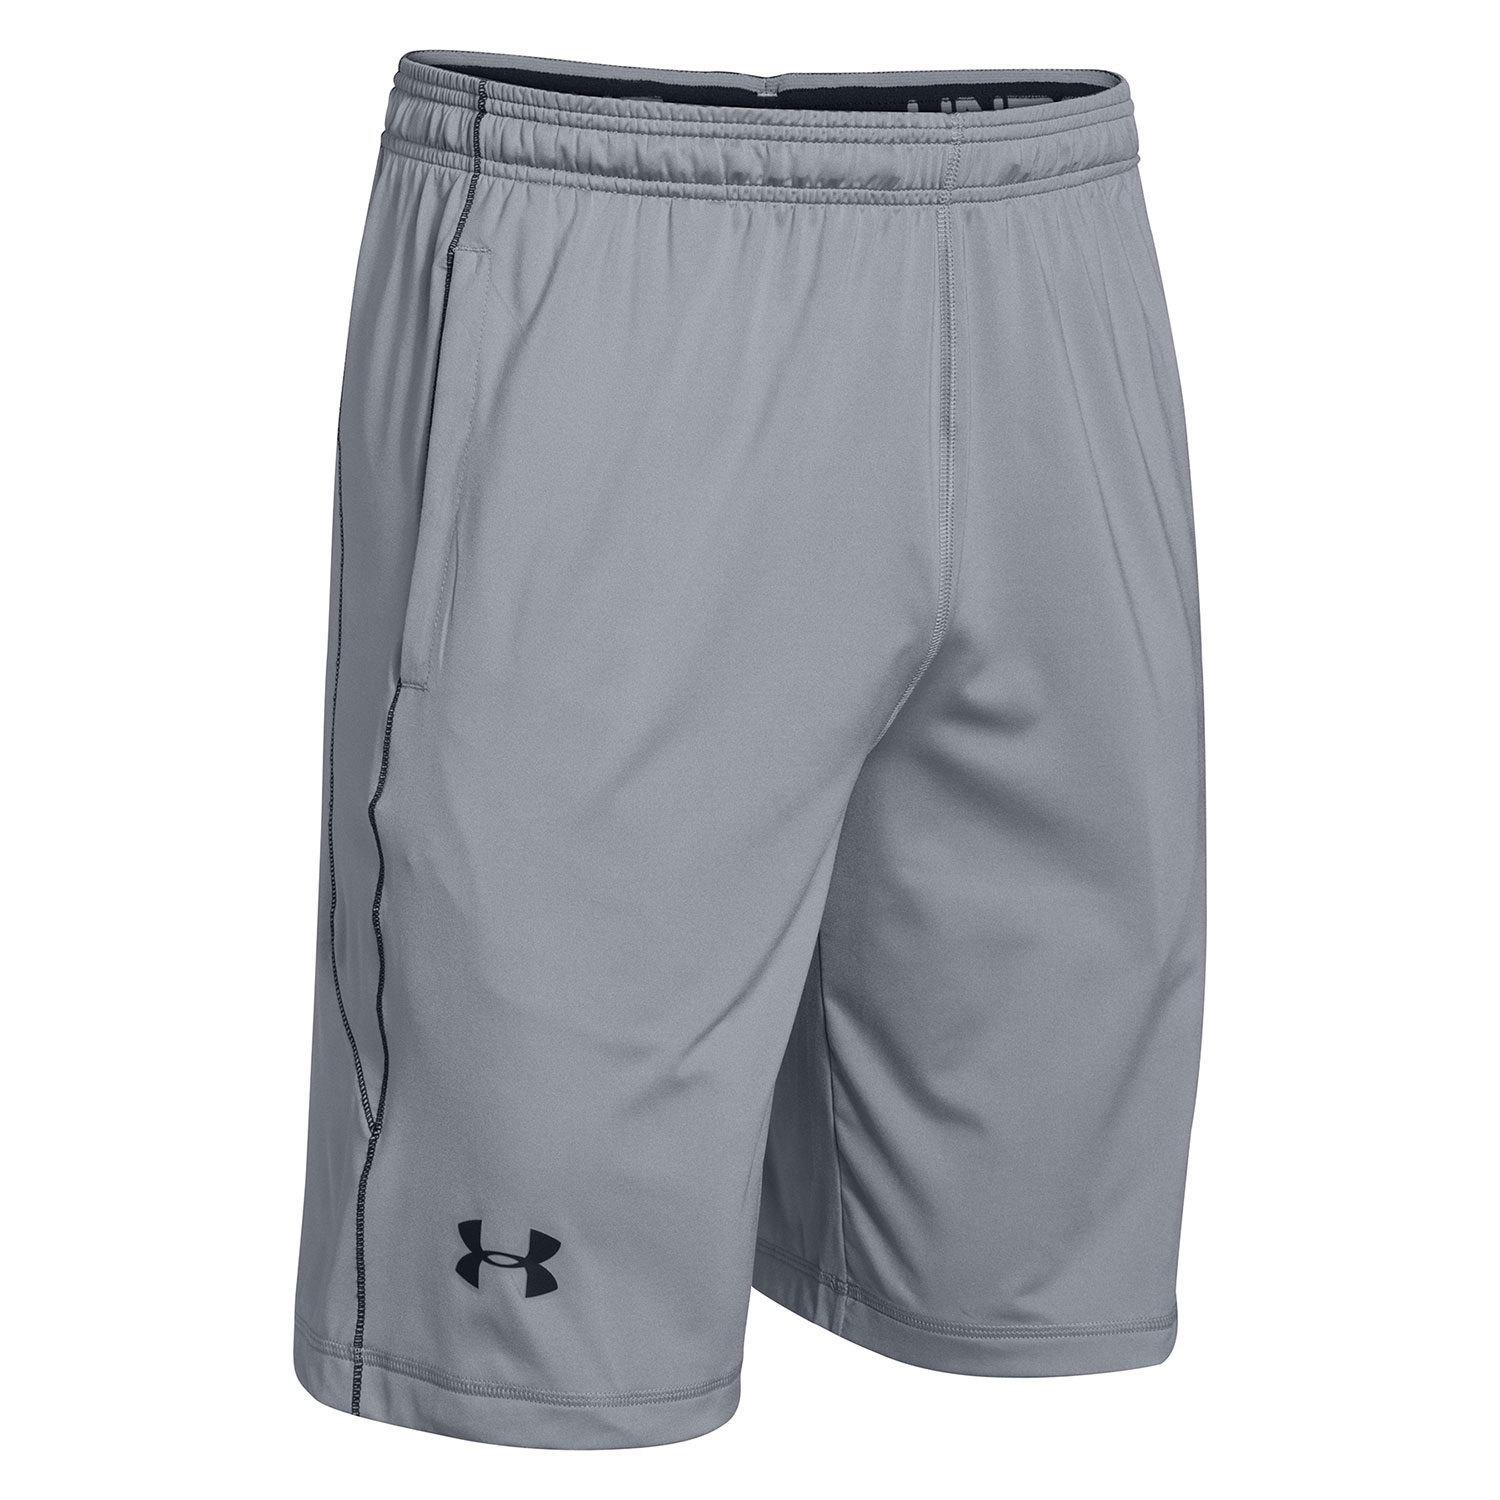 Under Armour Men's WWP Raid Shorts